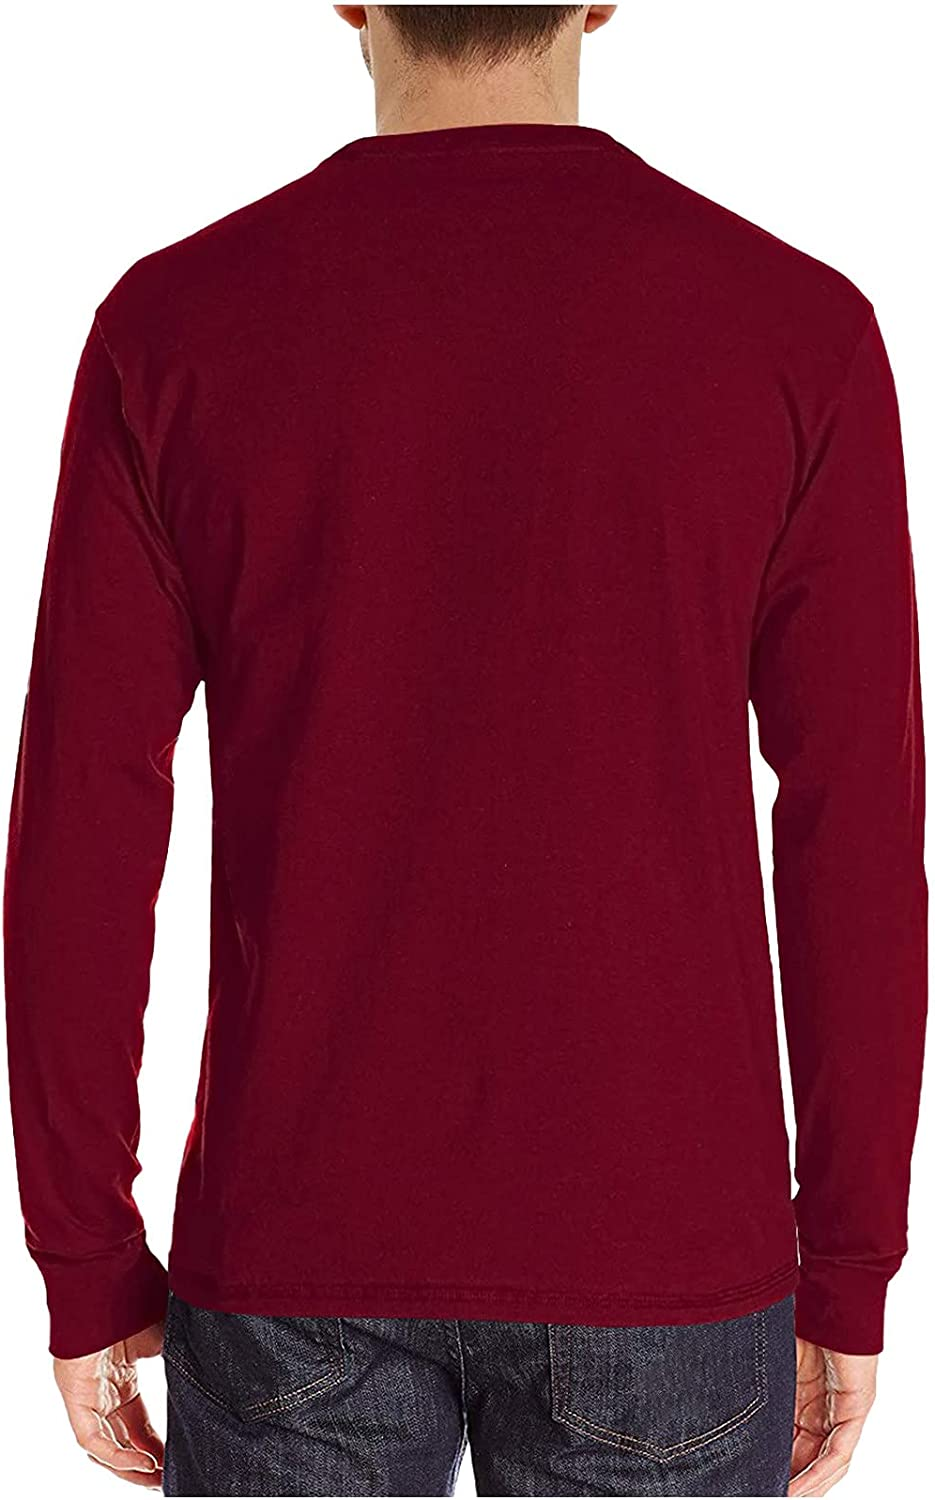 Mens Long Sleeve Henley Max 71% OFF Shirts Sli Lightweight Solid Tops Casual Max 83% OFF